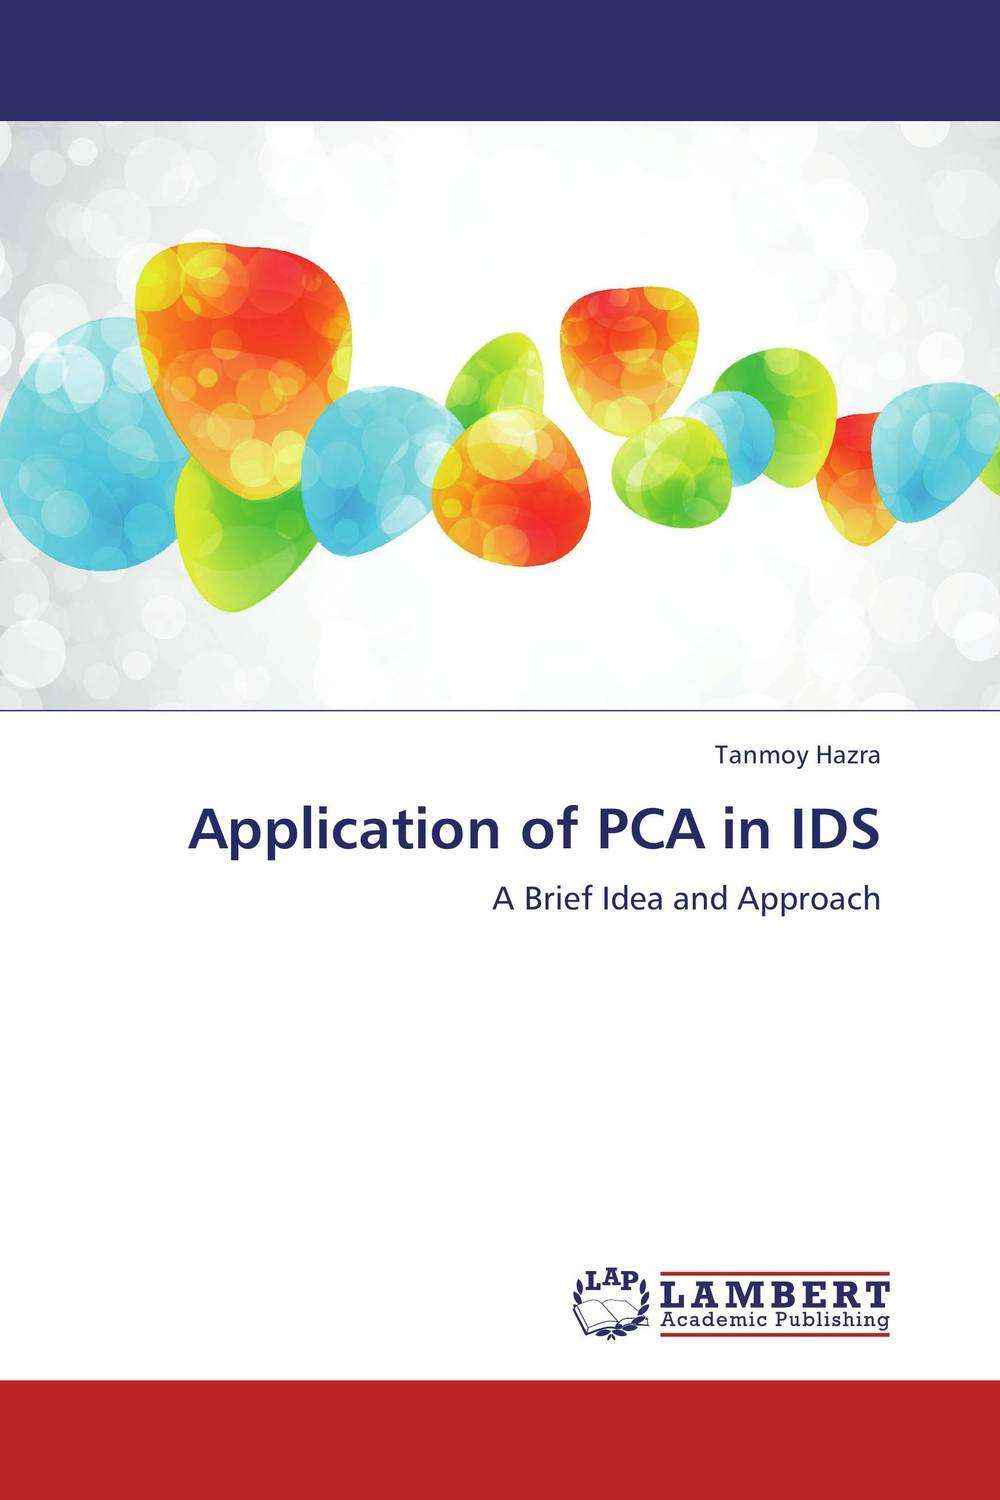 Application of PCA in IDS phishing attacks and detection